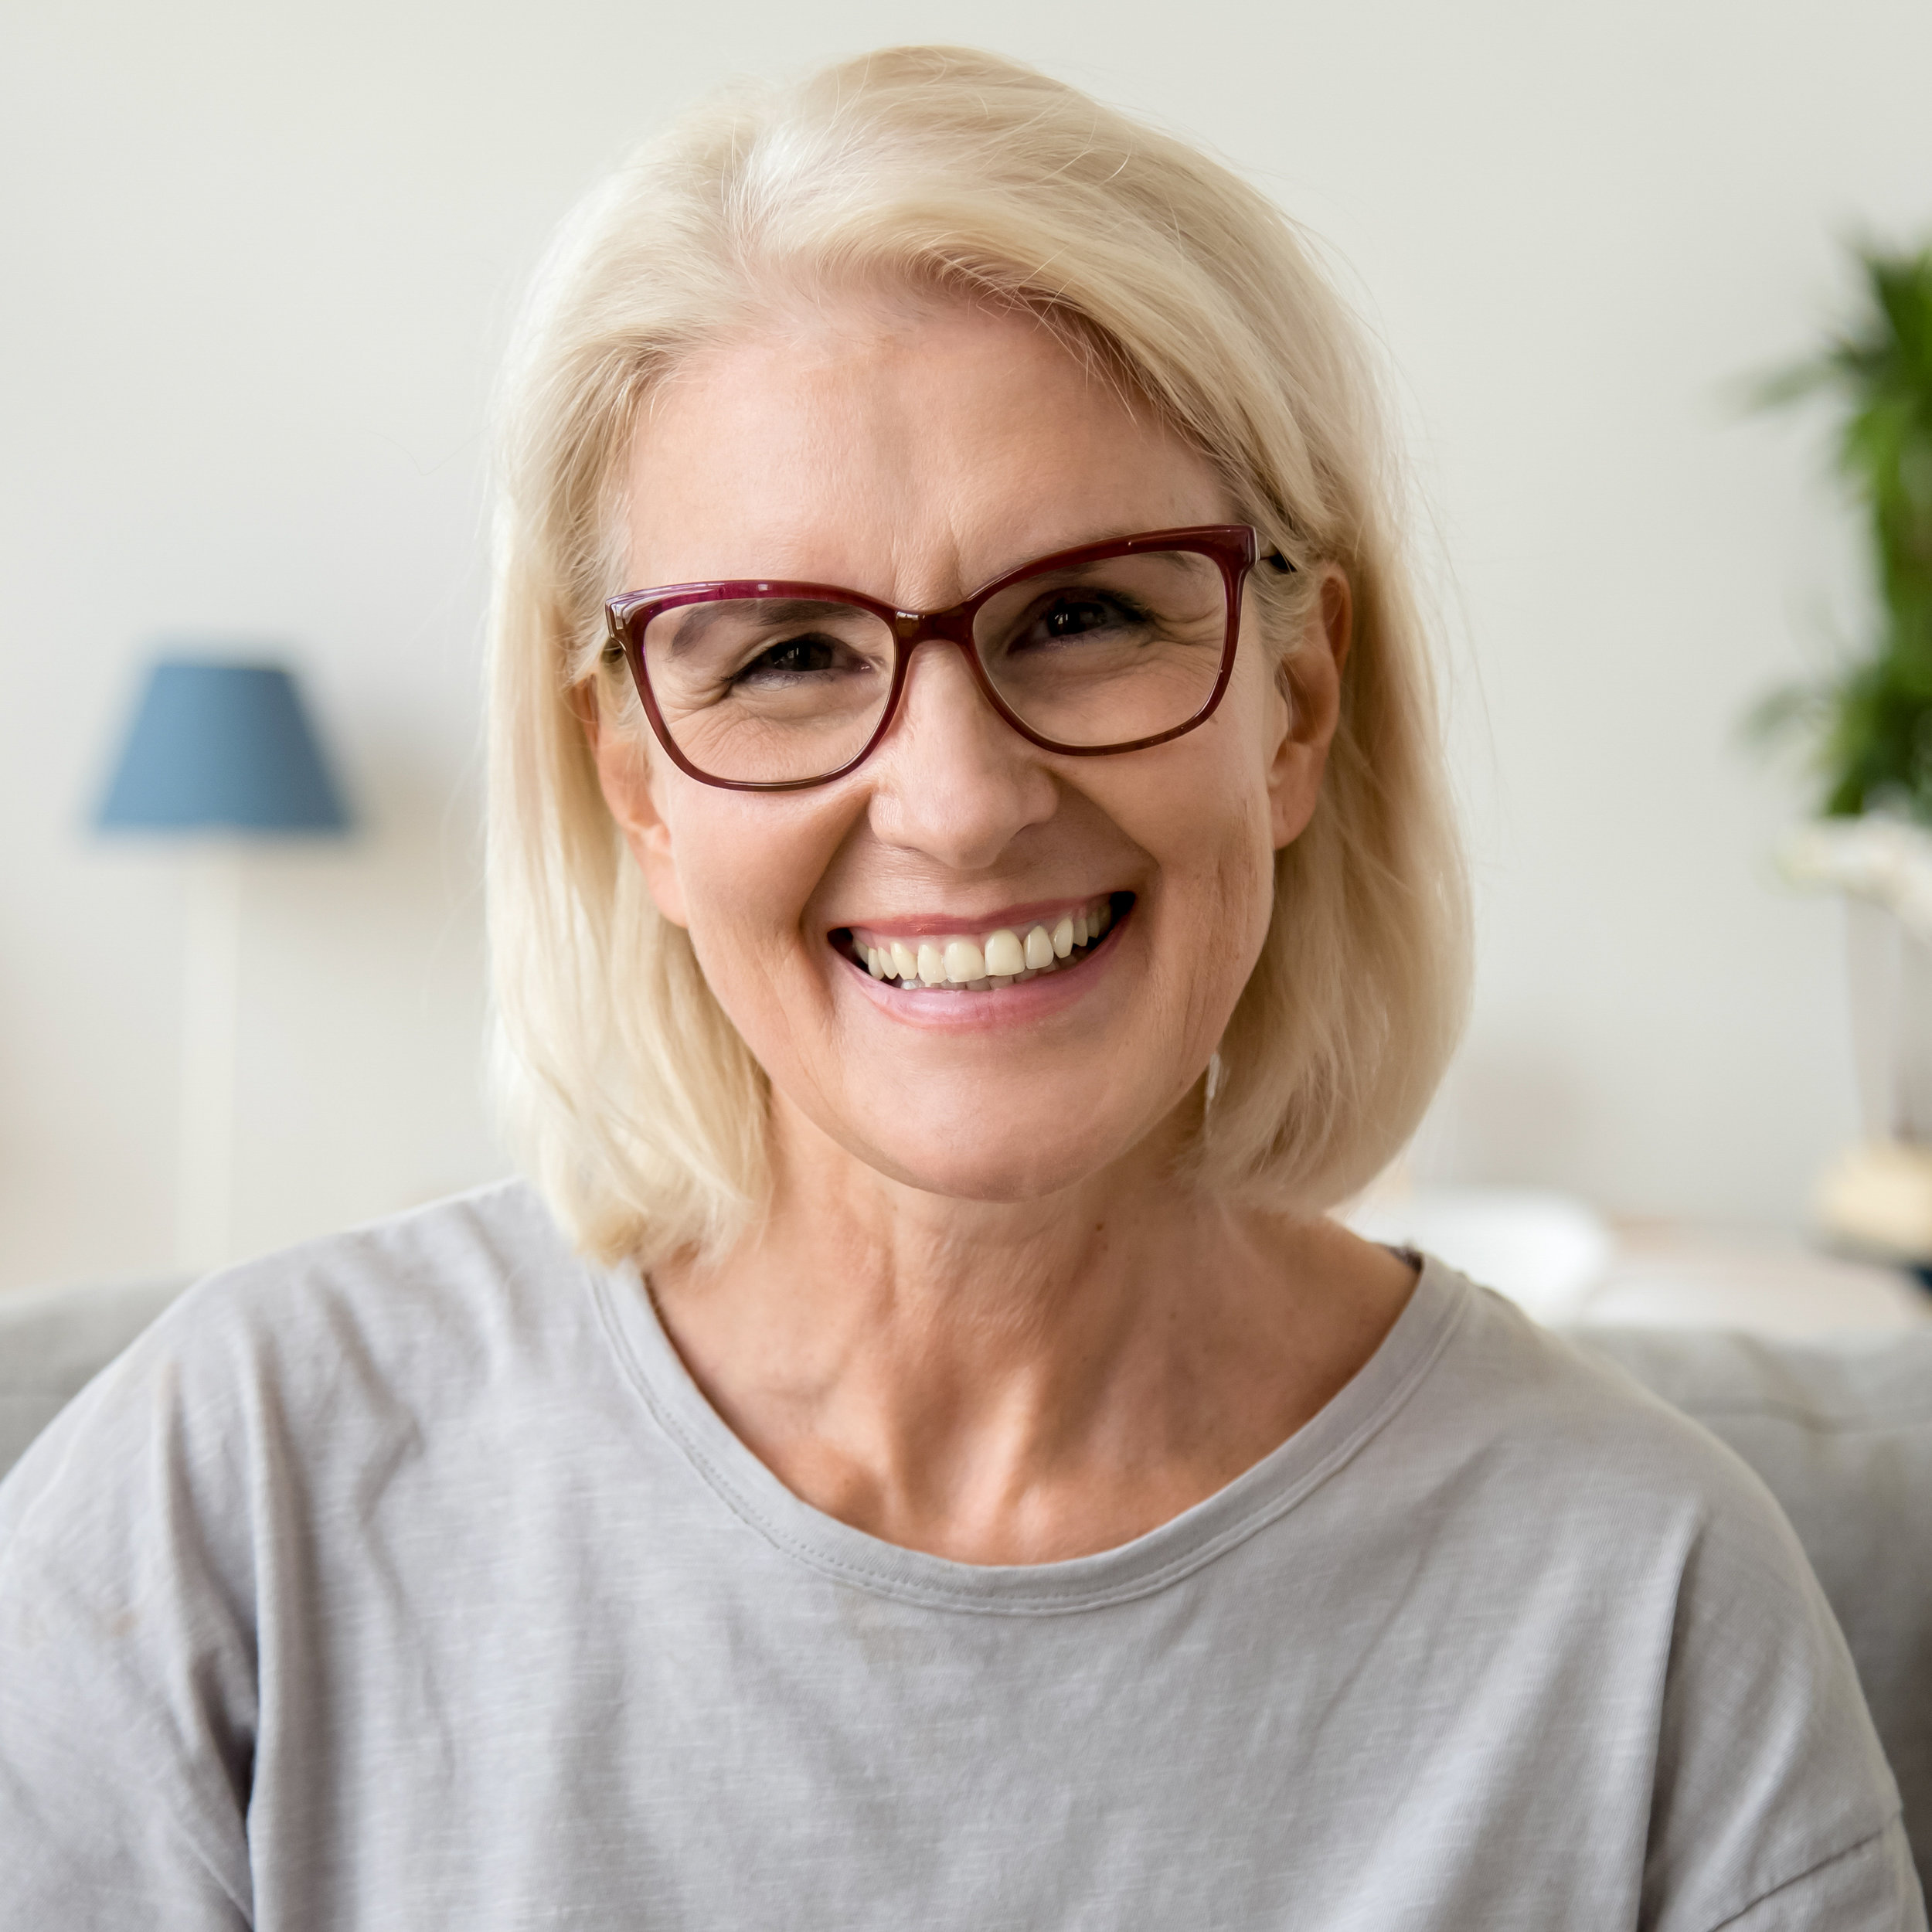 Older Woman Smiling with nice teeth after going to Total Health Dental Care.